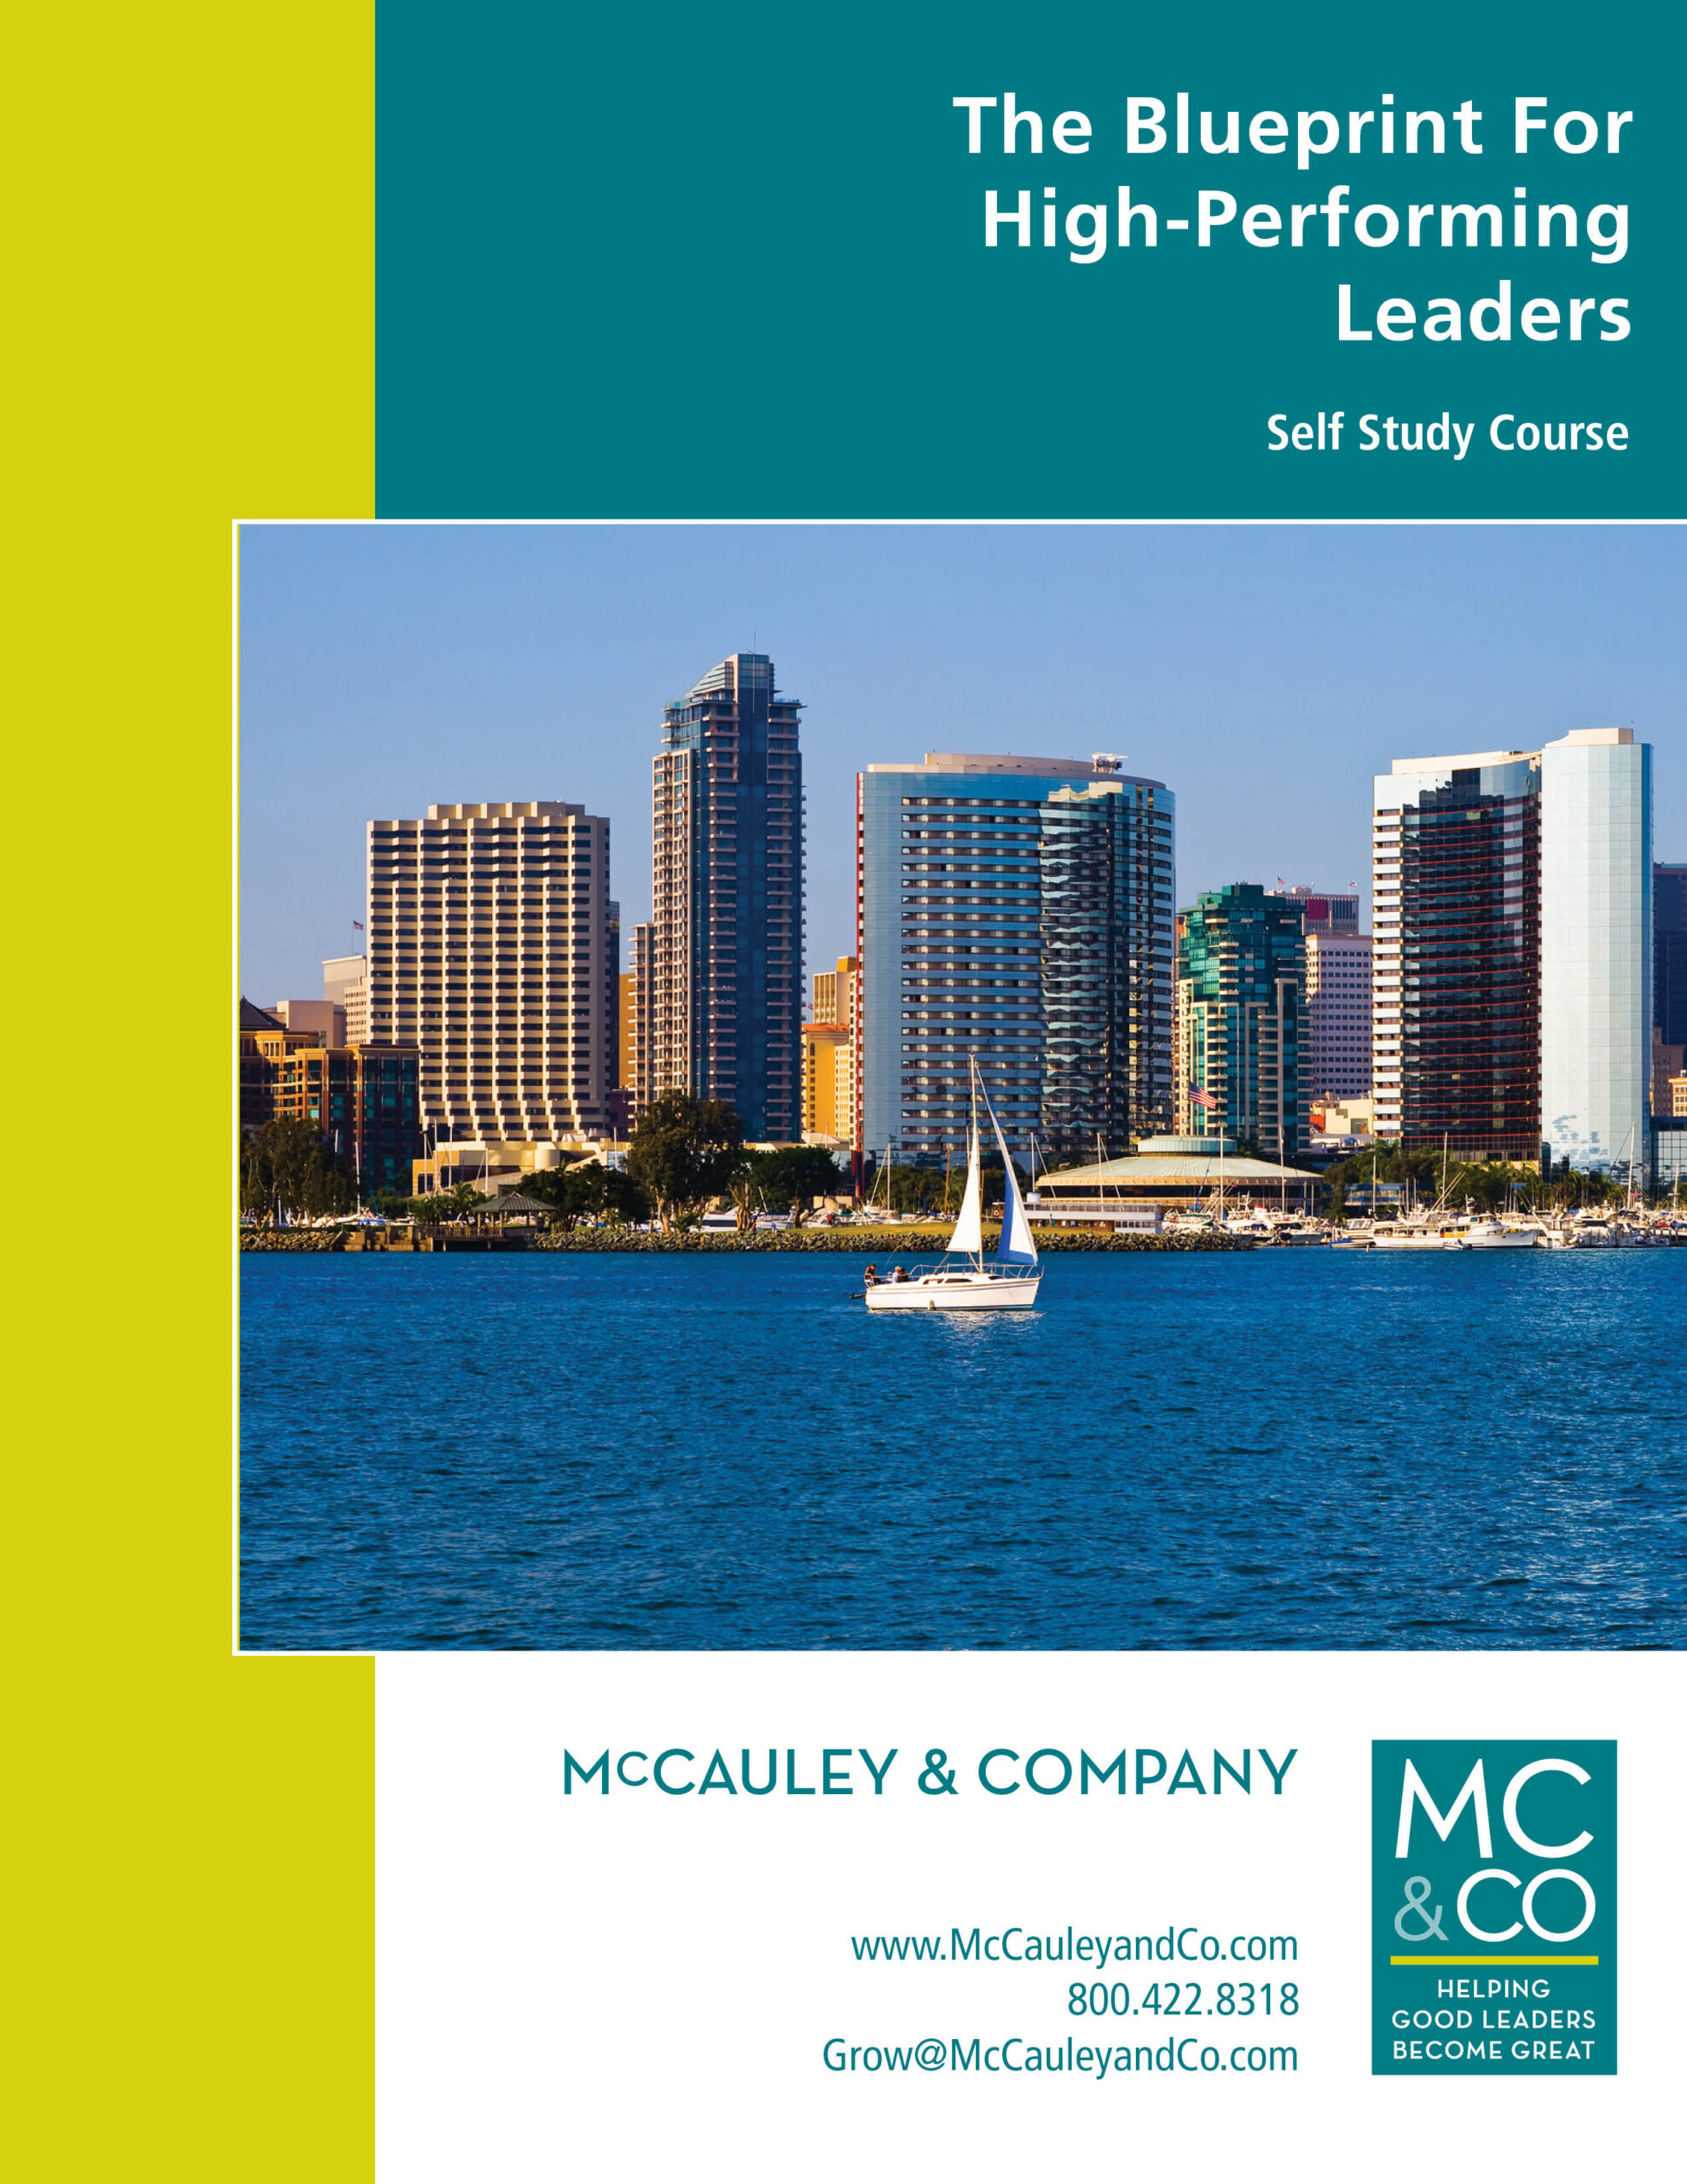 THE BLUEPRINT FOR HIGH-PERFORMING LEADERS™ SELF STUDY COURSE